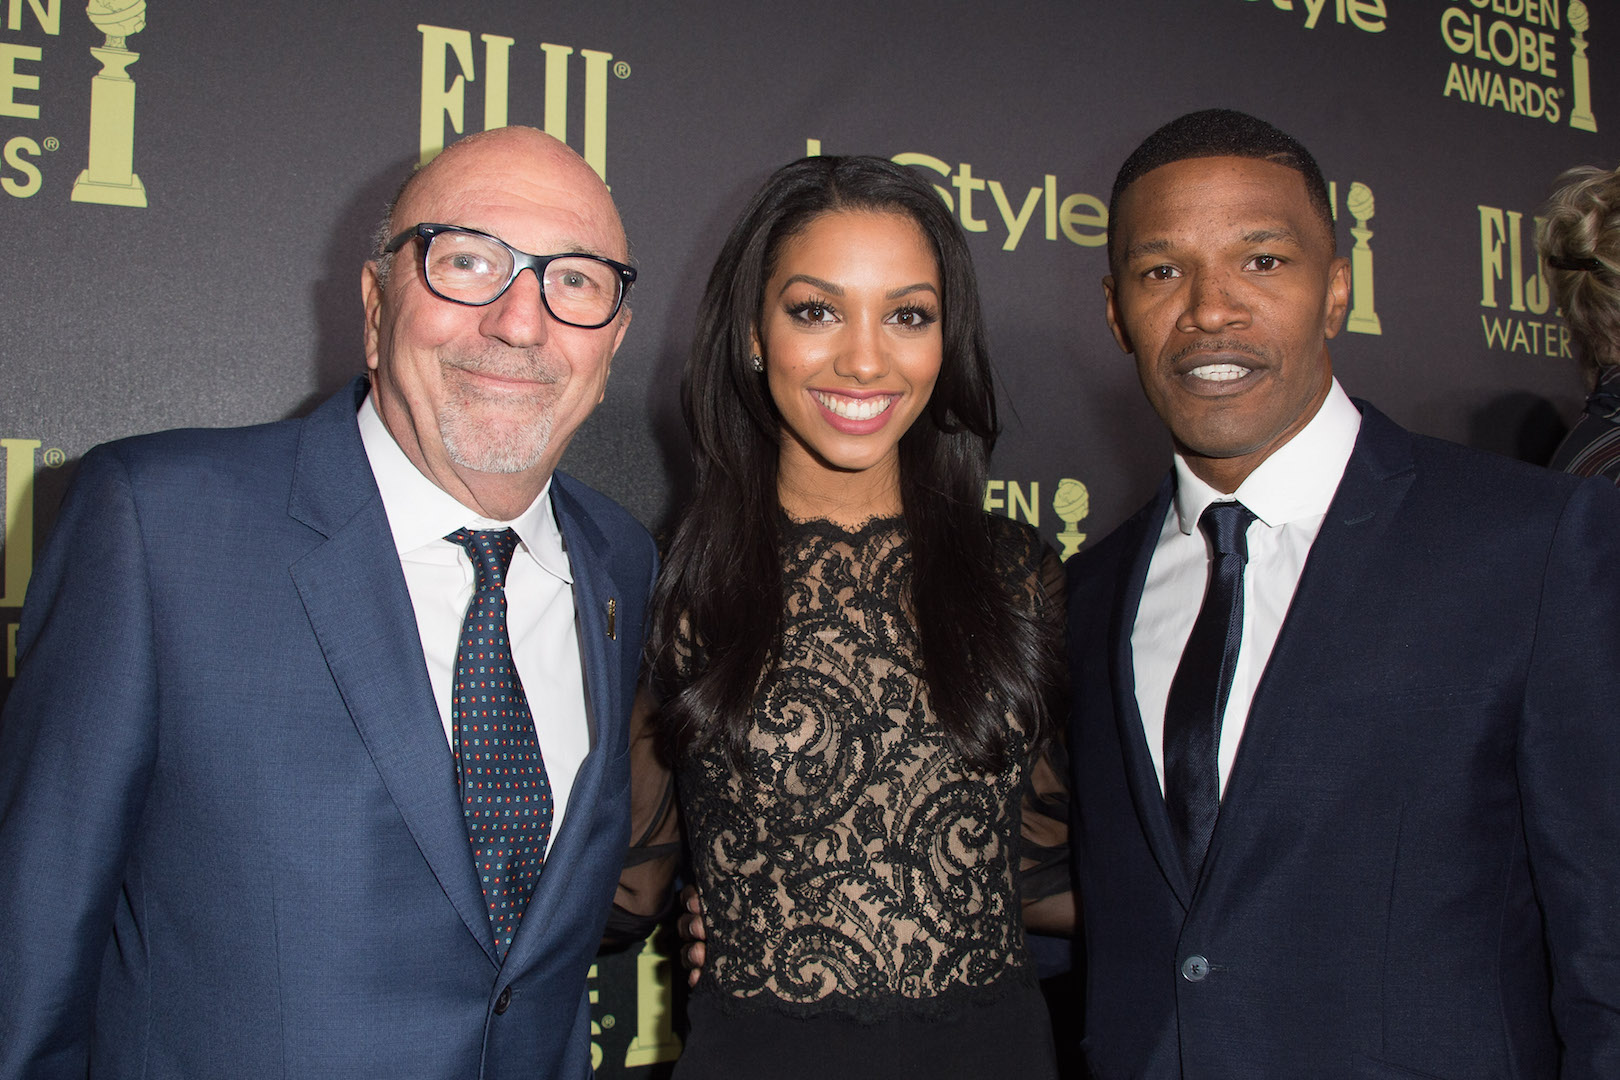 HFPA President Lorenzo Soria, Corinne Foxx, Miss Golden Globe 2016, and Jamie Foxx attend a party for the announcement of Corinne Foxx as Miss Golden Globe 2016 for the 73rd Annual Golden Globe Awards set to air live on NBC on January 10, 2016.